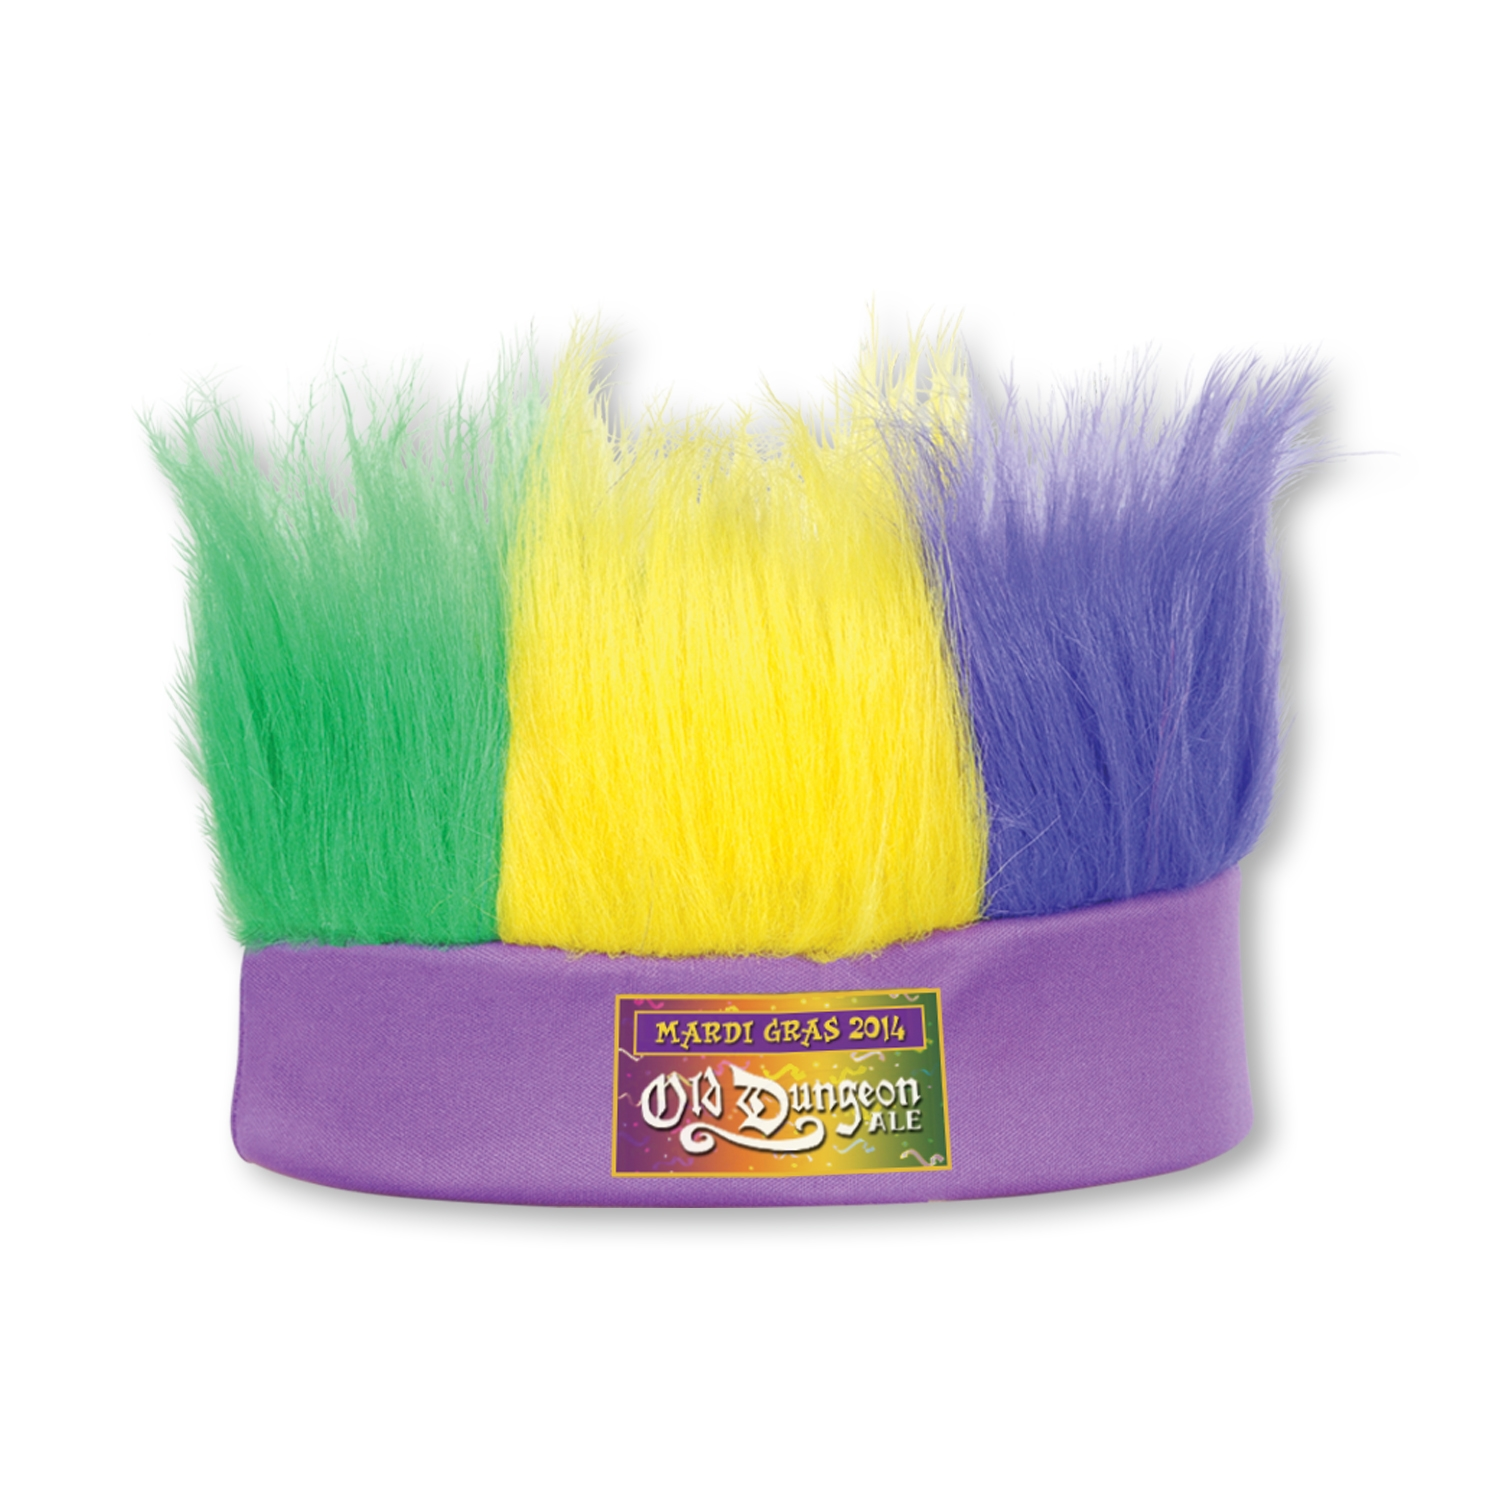 Custom Mardi Gras Hairy Headbands Custom Mardi Gras Hairy Headbands, custom, mardi gras, party favor, headbands, wholesale, inexpensive, bulk